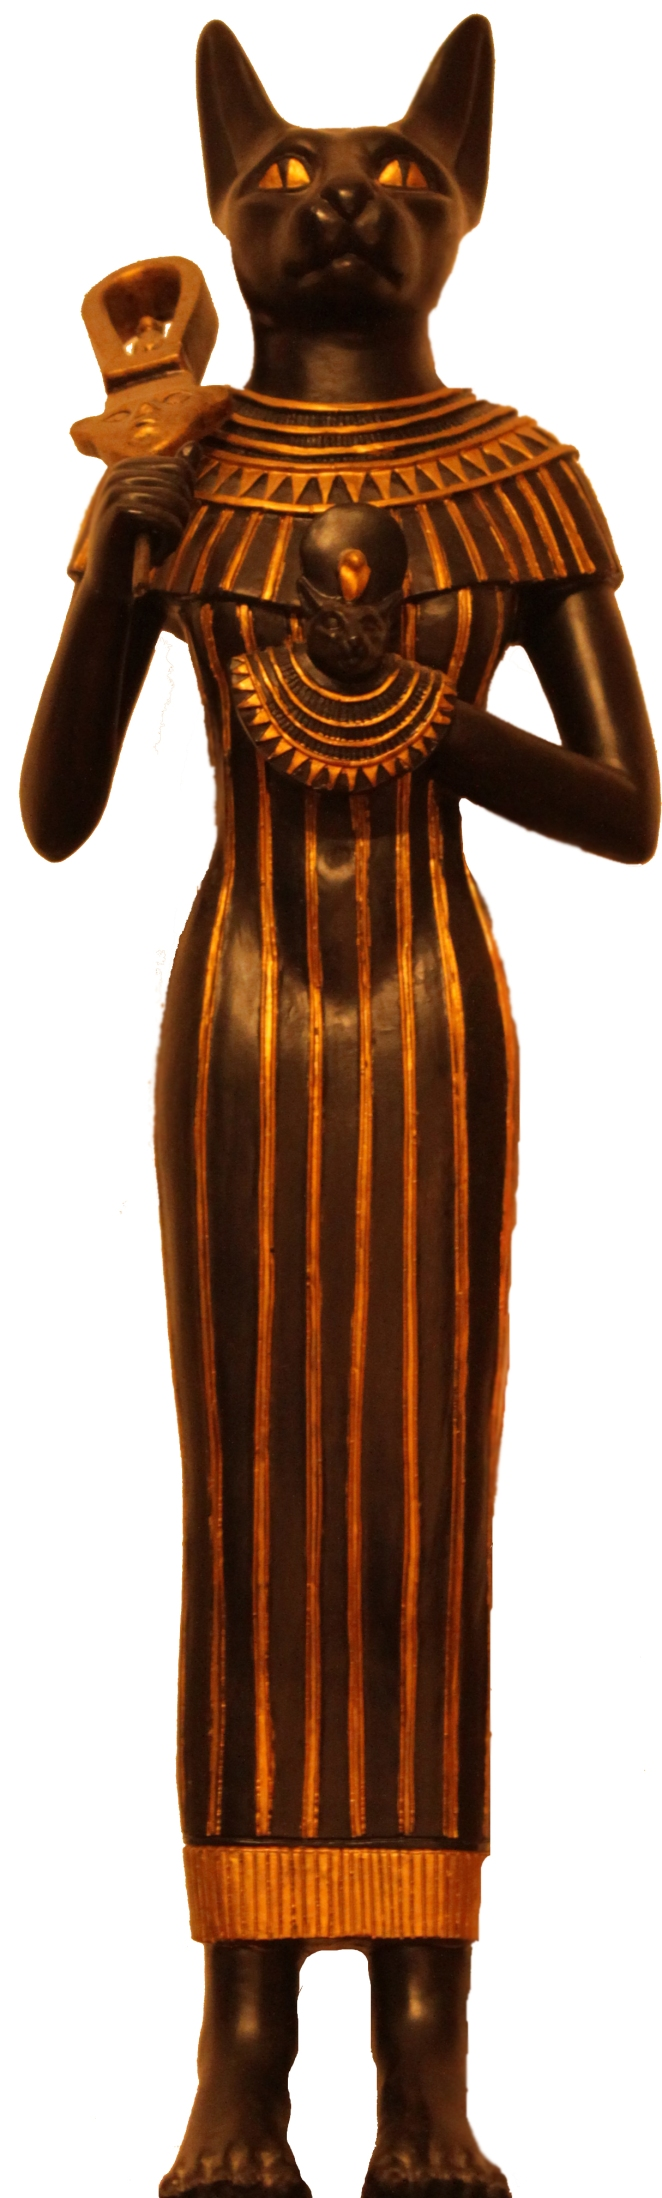 Quelle: Kotofeij K. Bajun, https://upload.wikimedia.org/wikipedia/commons/7/72/Bastet_dame_katzenkopf.jpg